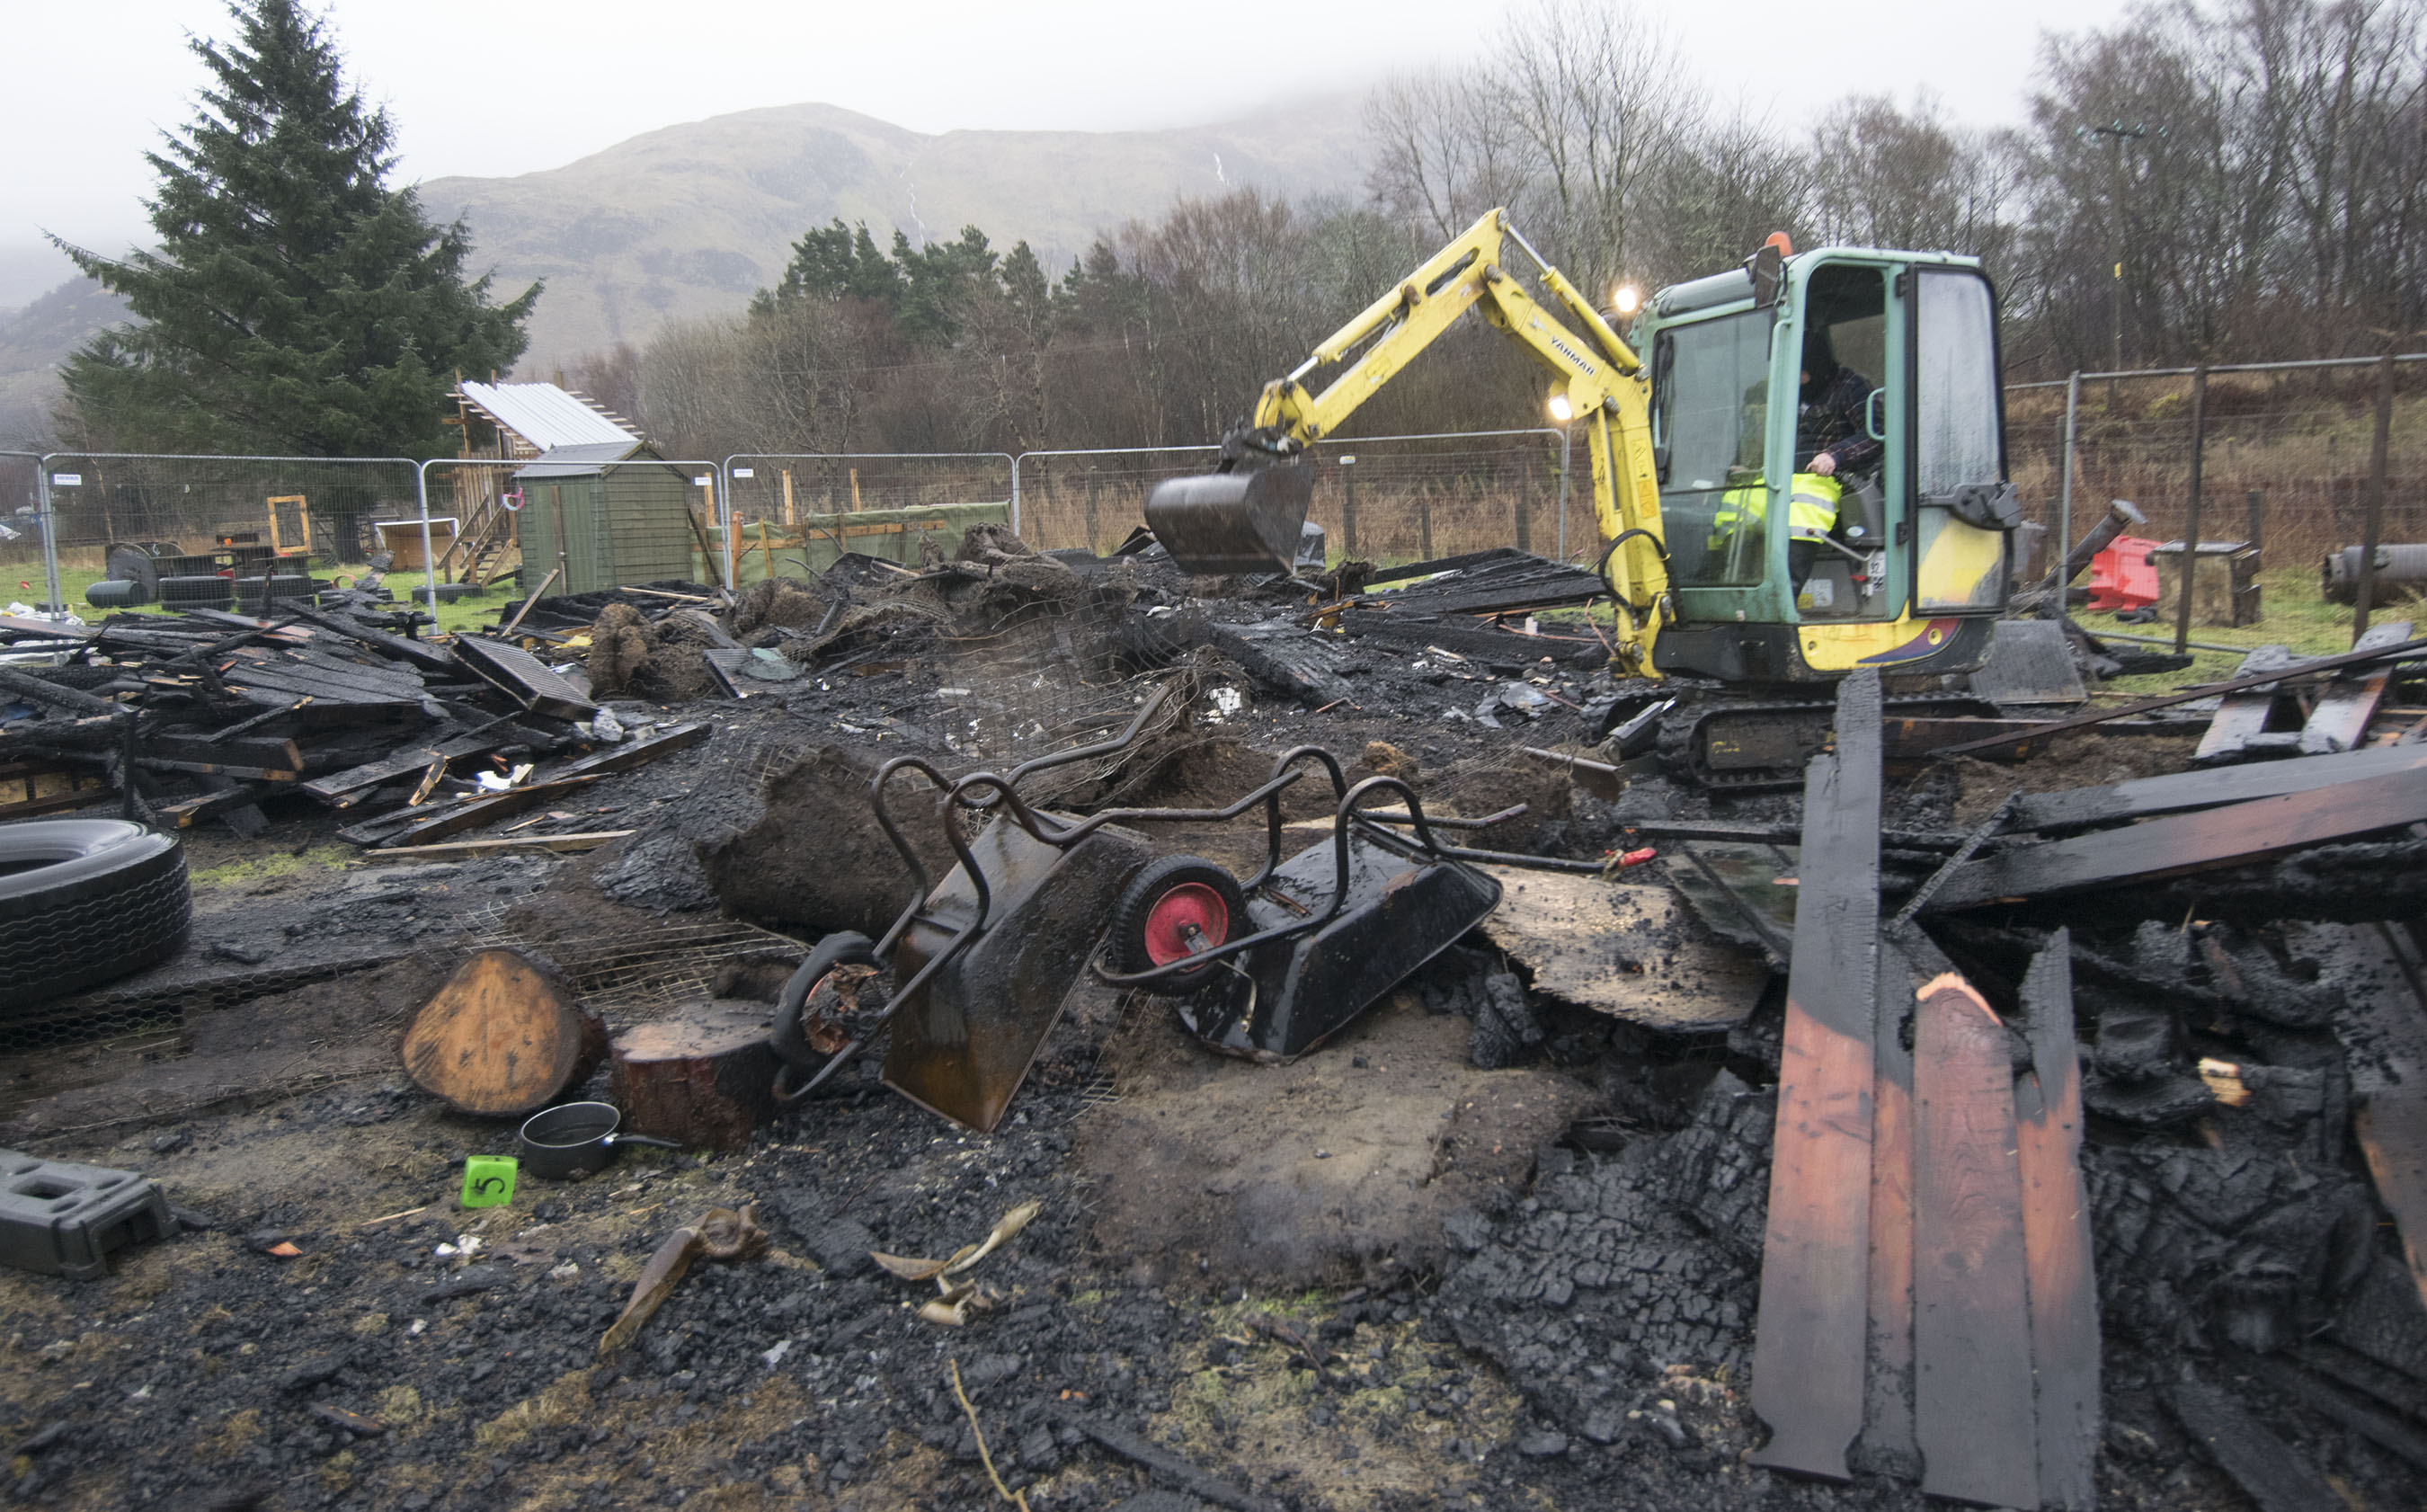 Local businesses provided heavy equipment to help clear away the remains of fire damaged buildings.